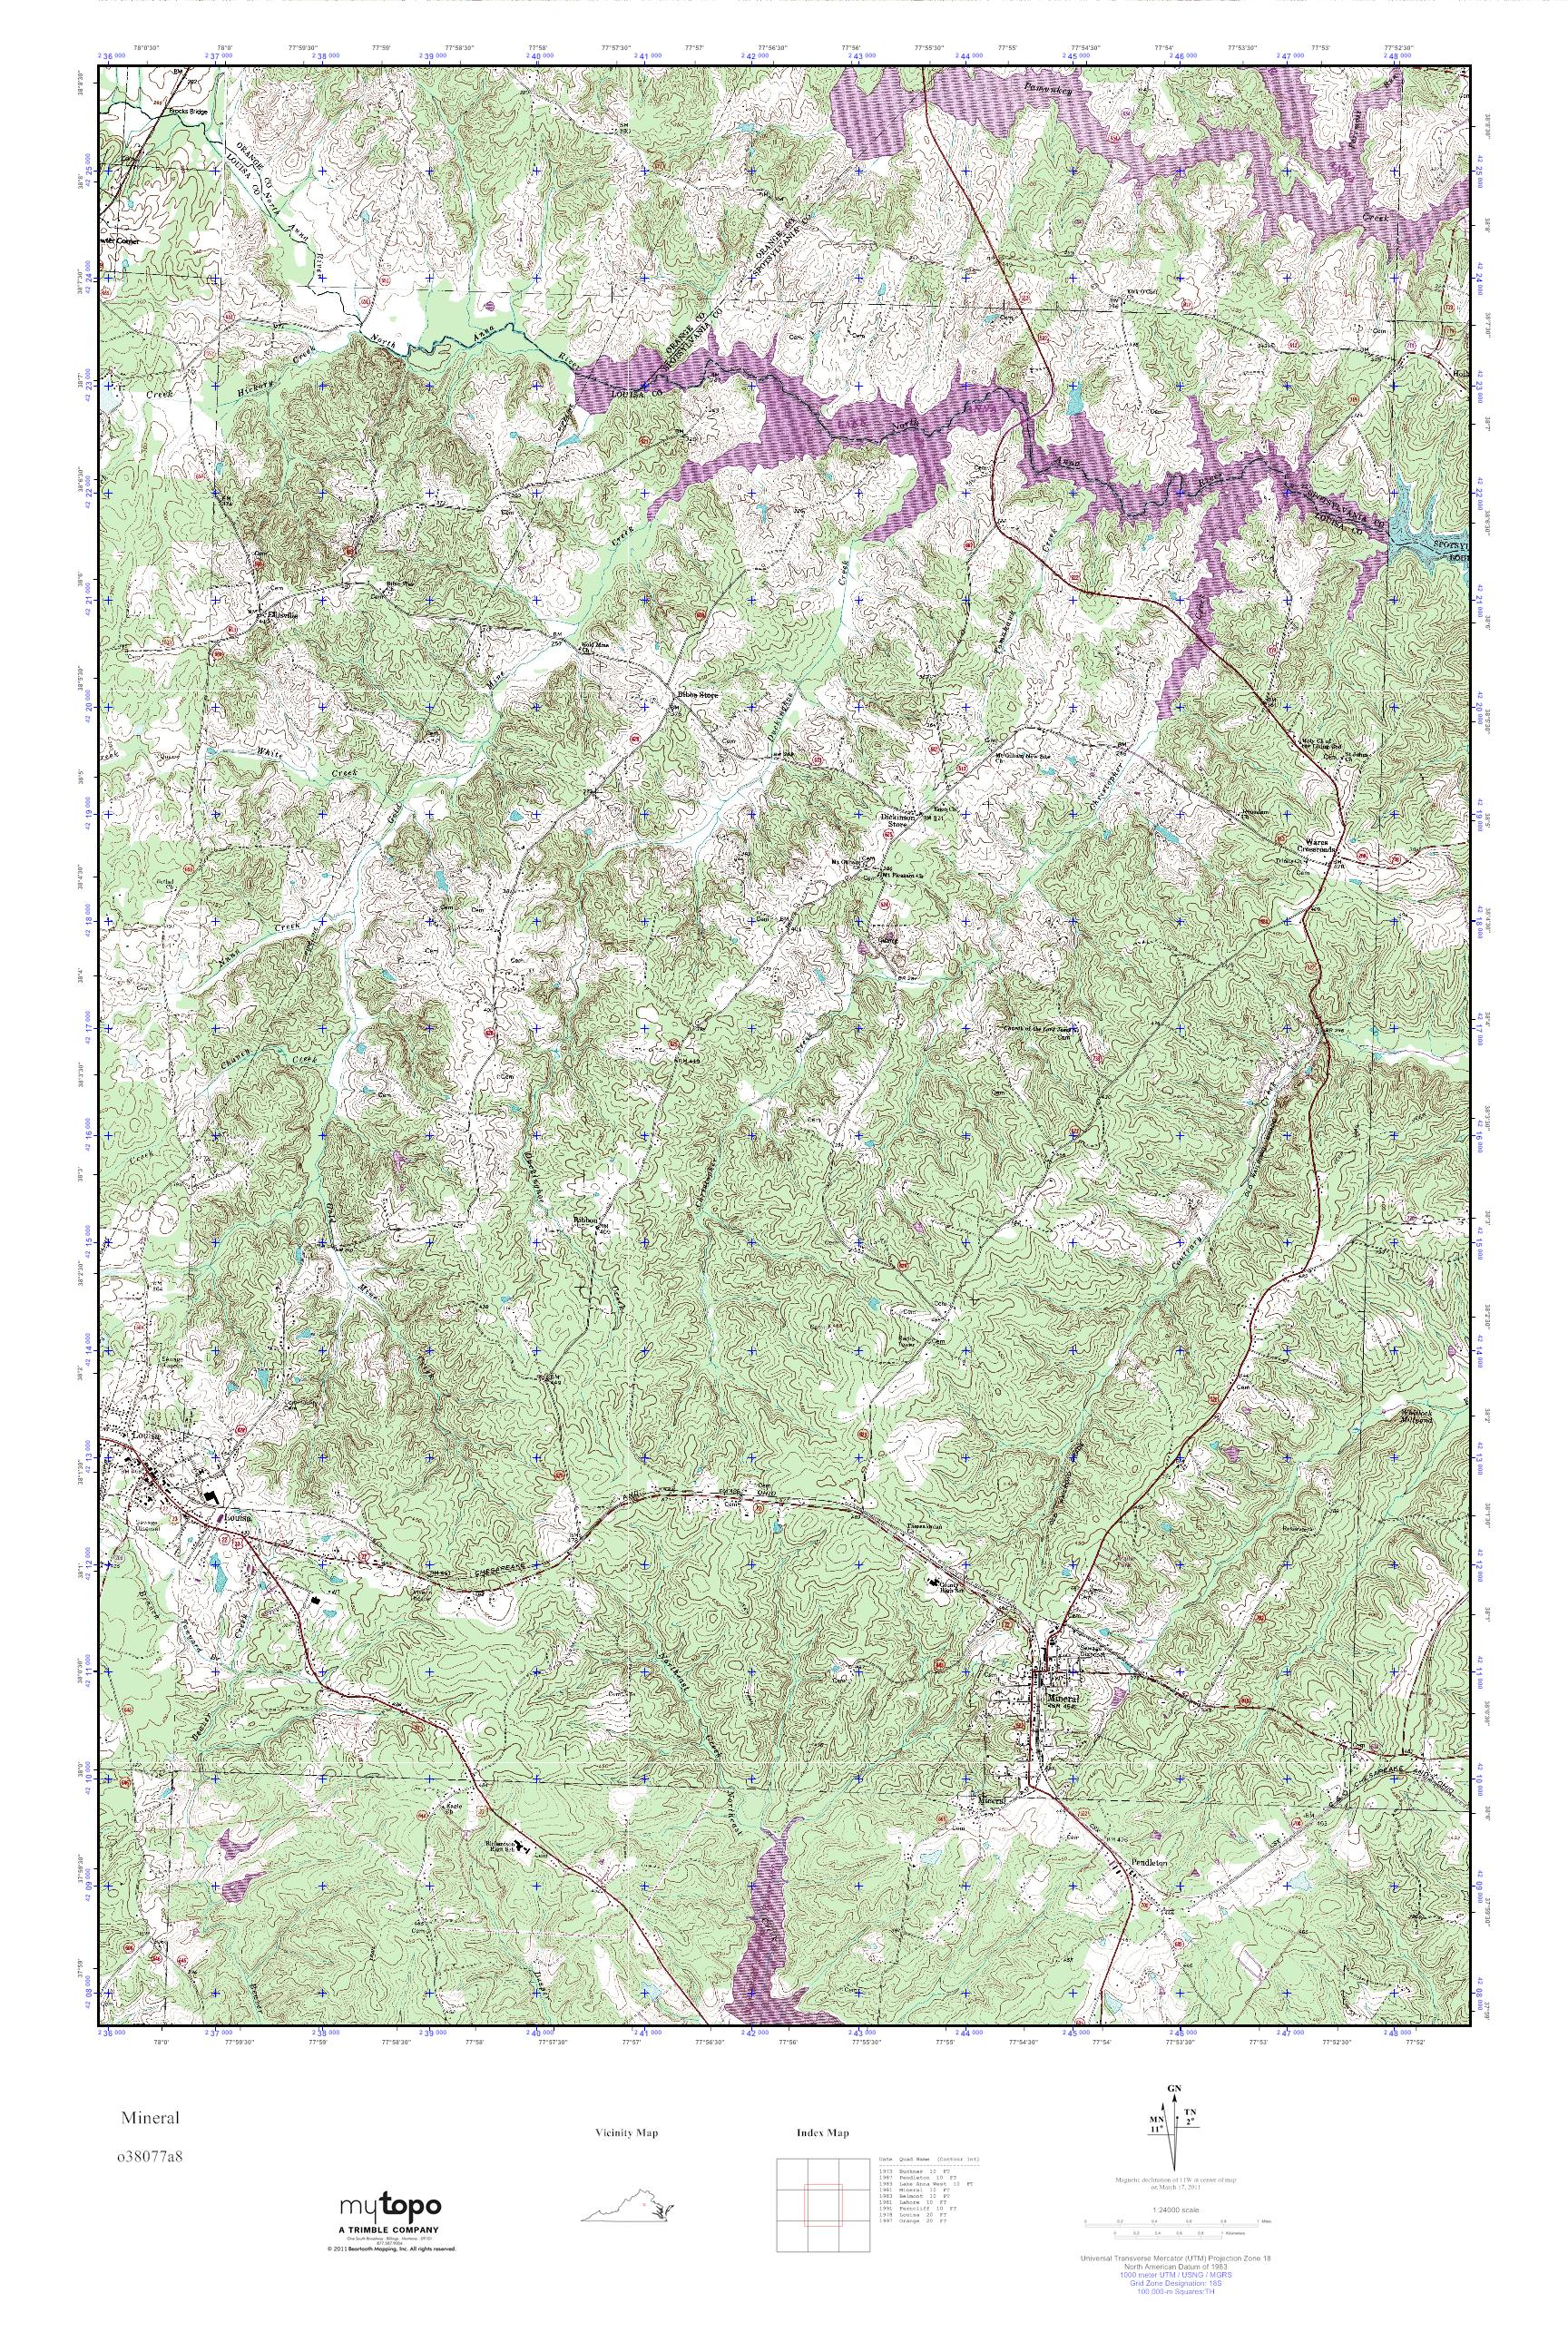 Mytopo Mineral Virginia Usgs Quad Topo Map